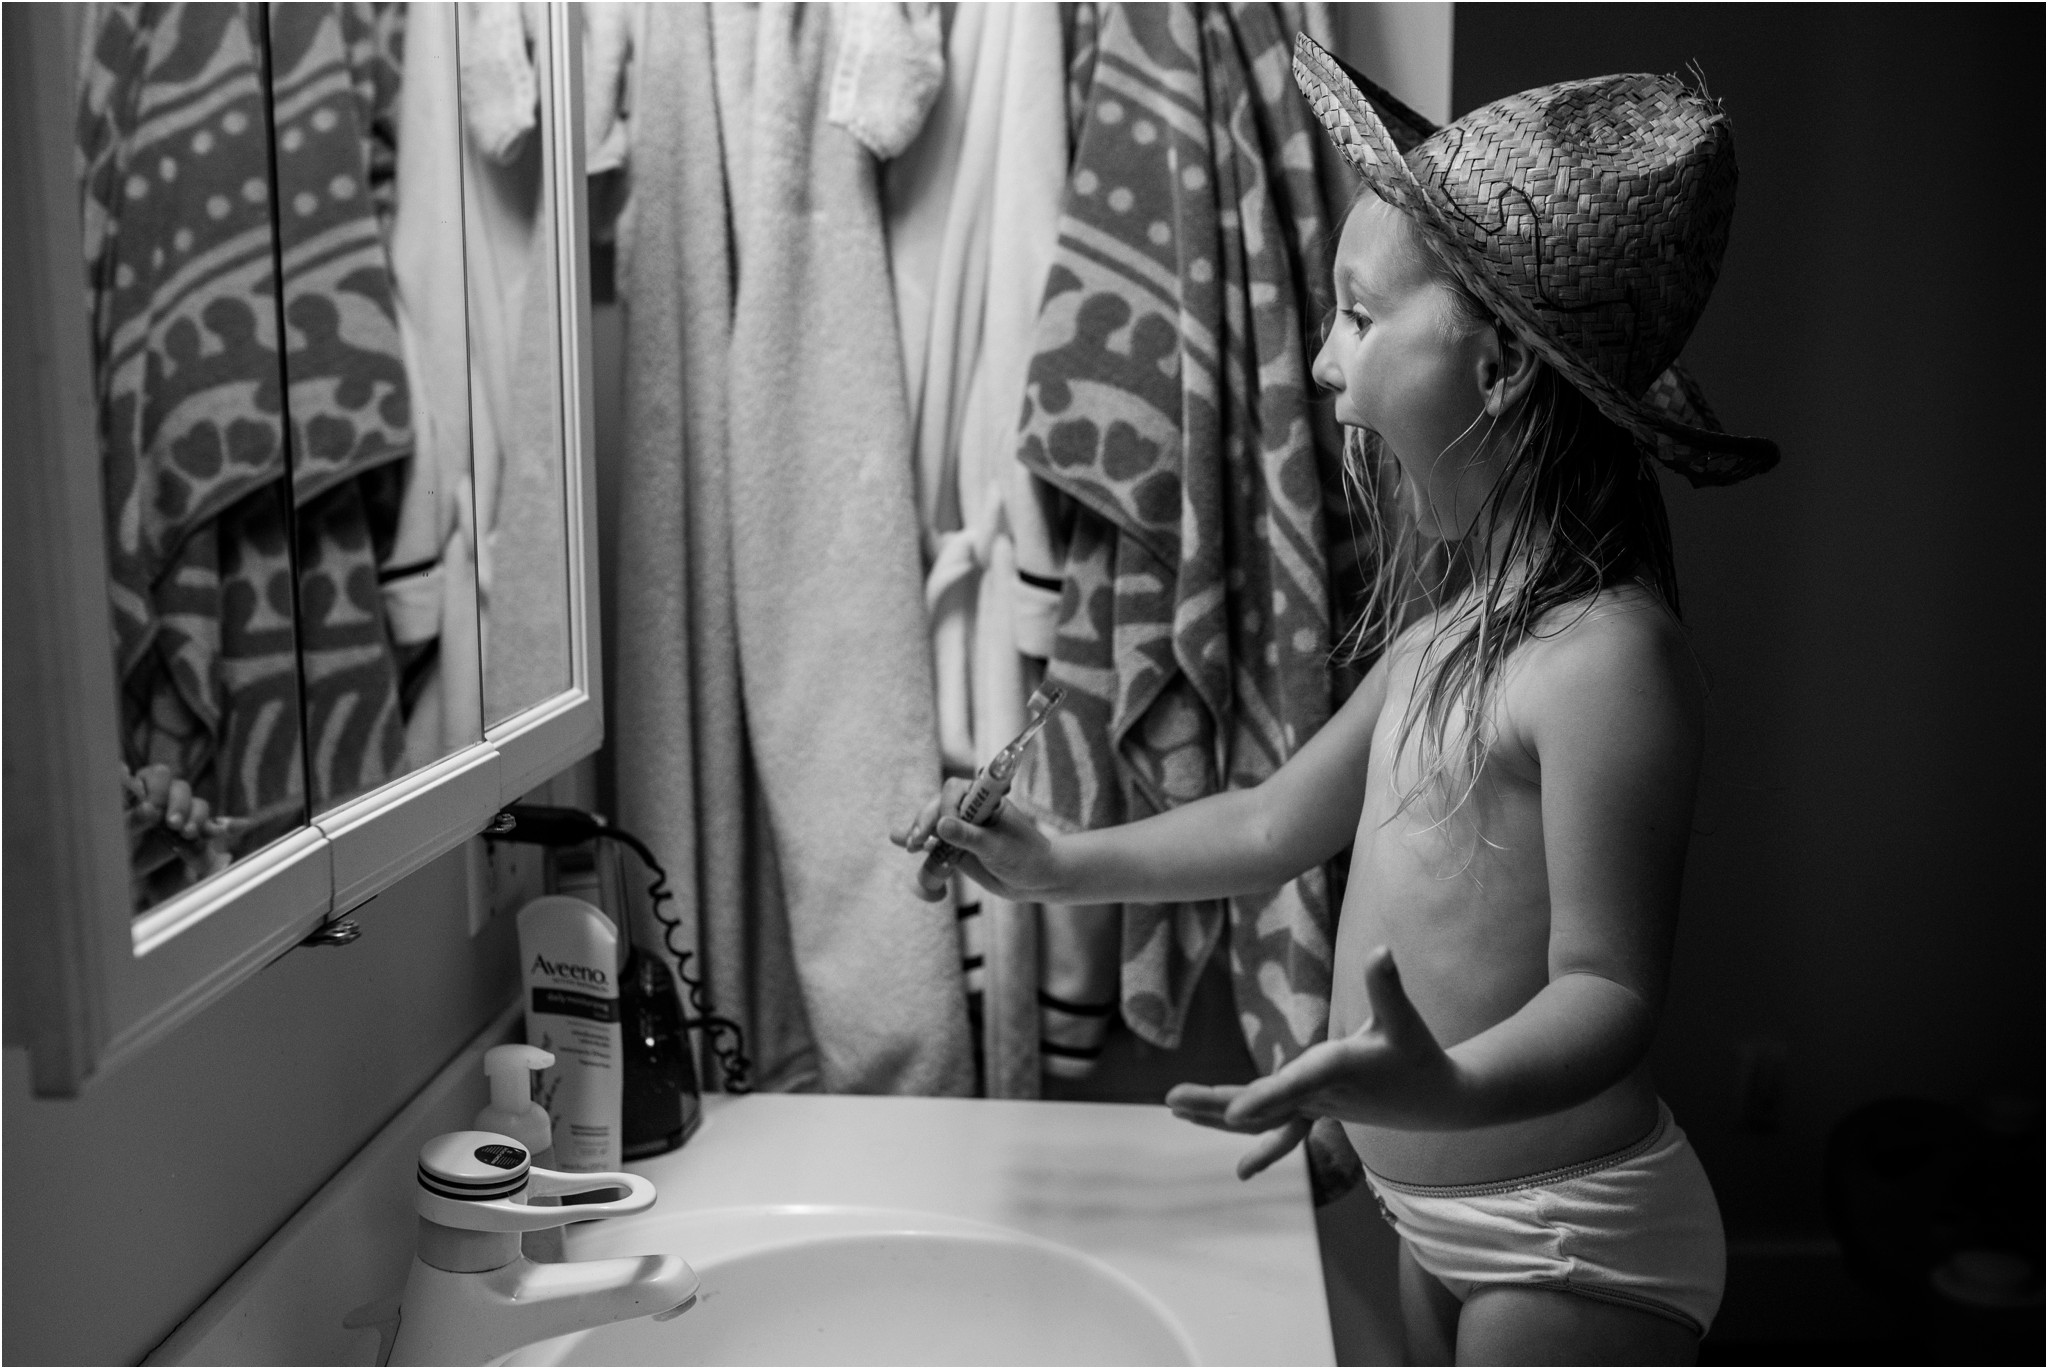 Girl wearing a hat while brushing her teeth